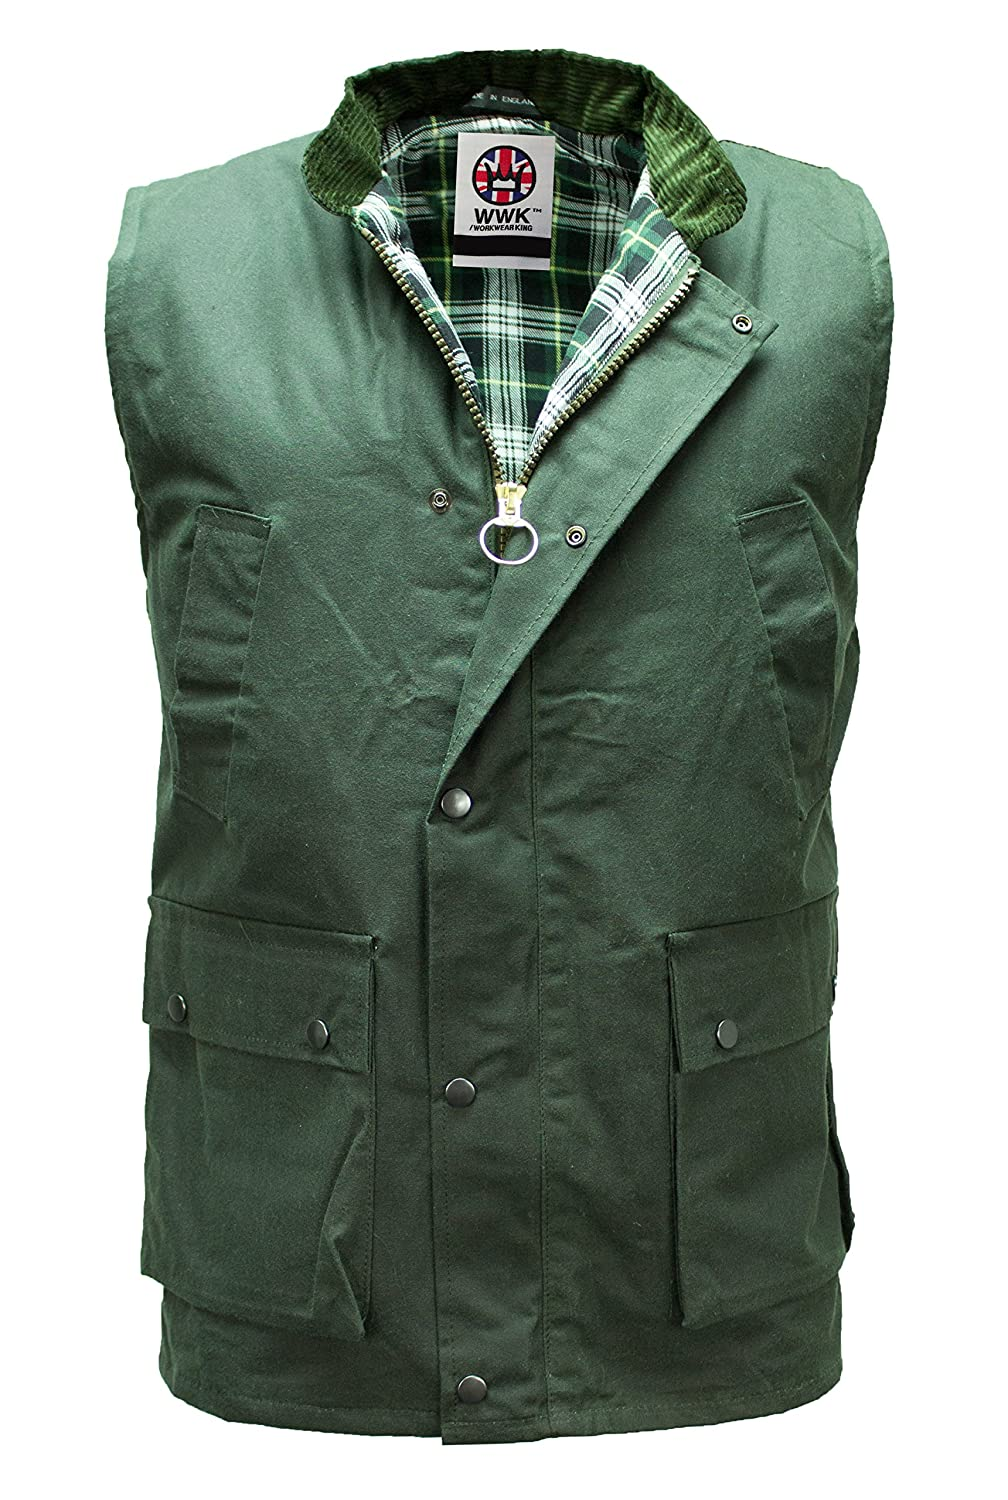 Wwk new wax gilet outdoor bodywarmer oiled waistcoat for Green top hunting and fishing